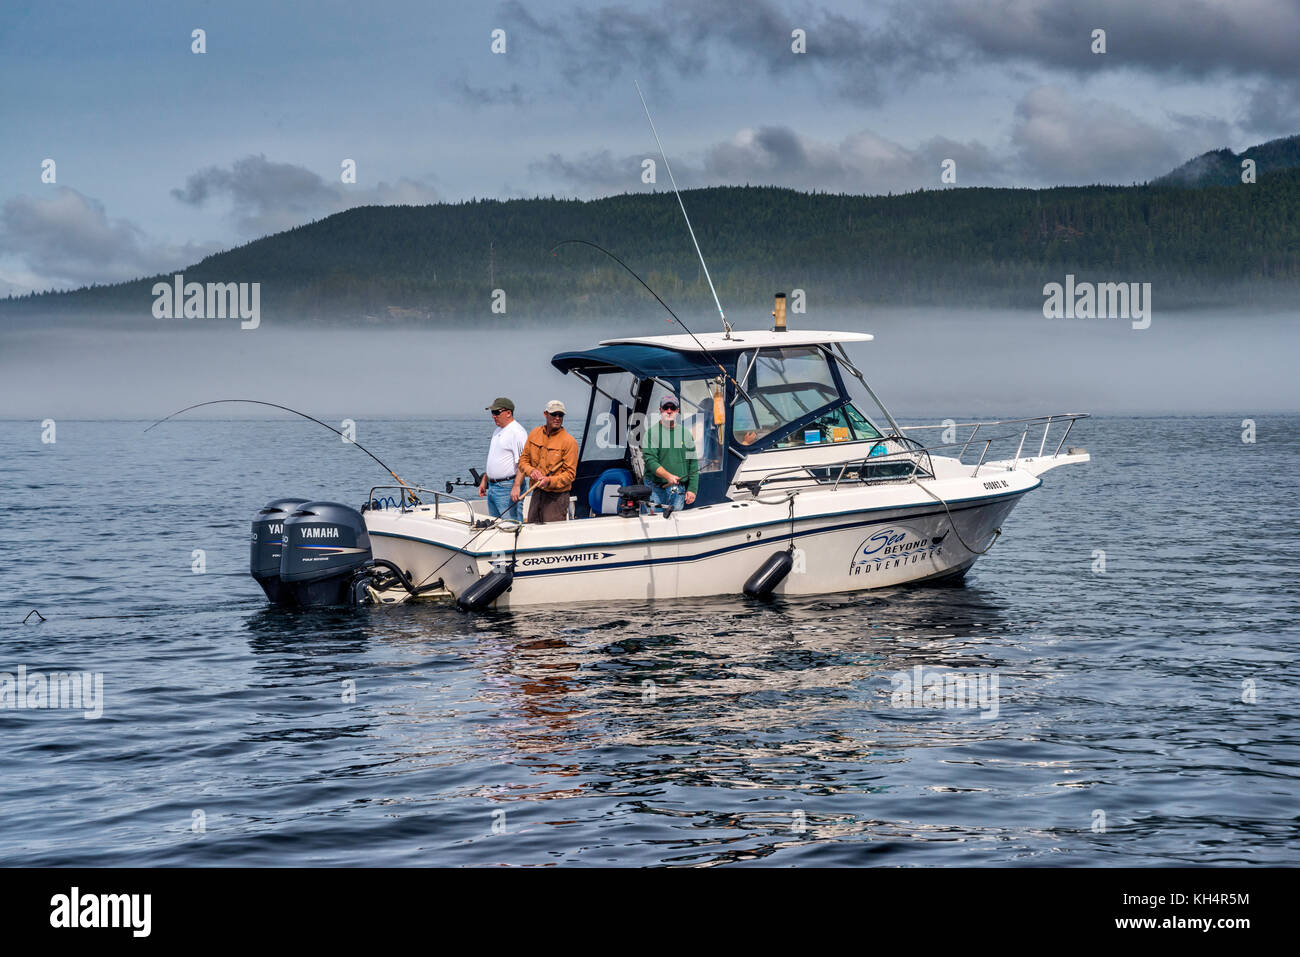 Fishing boat, foggy day in Johnstone Strait off Vancouver Island, British Columbia, Canada - Stock Image